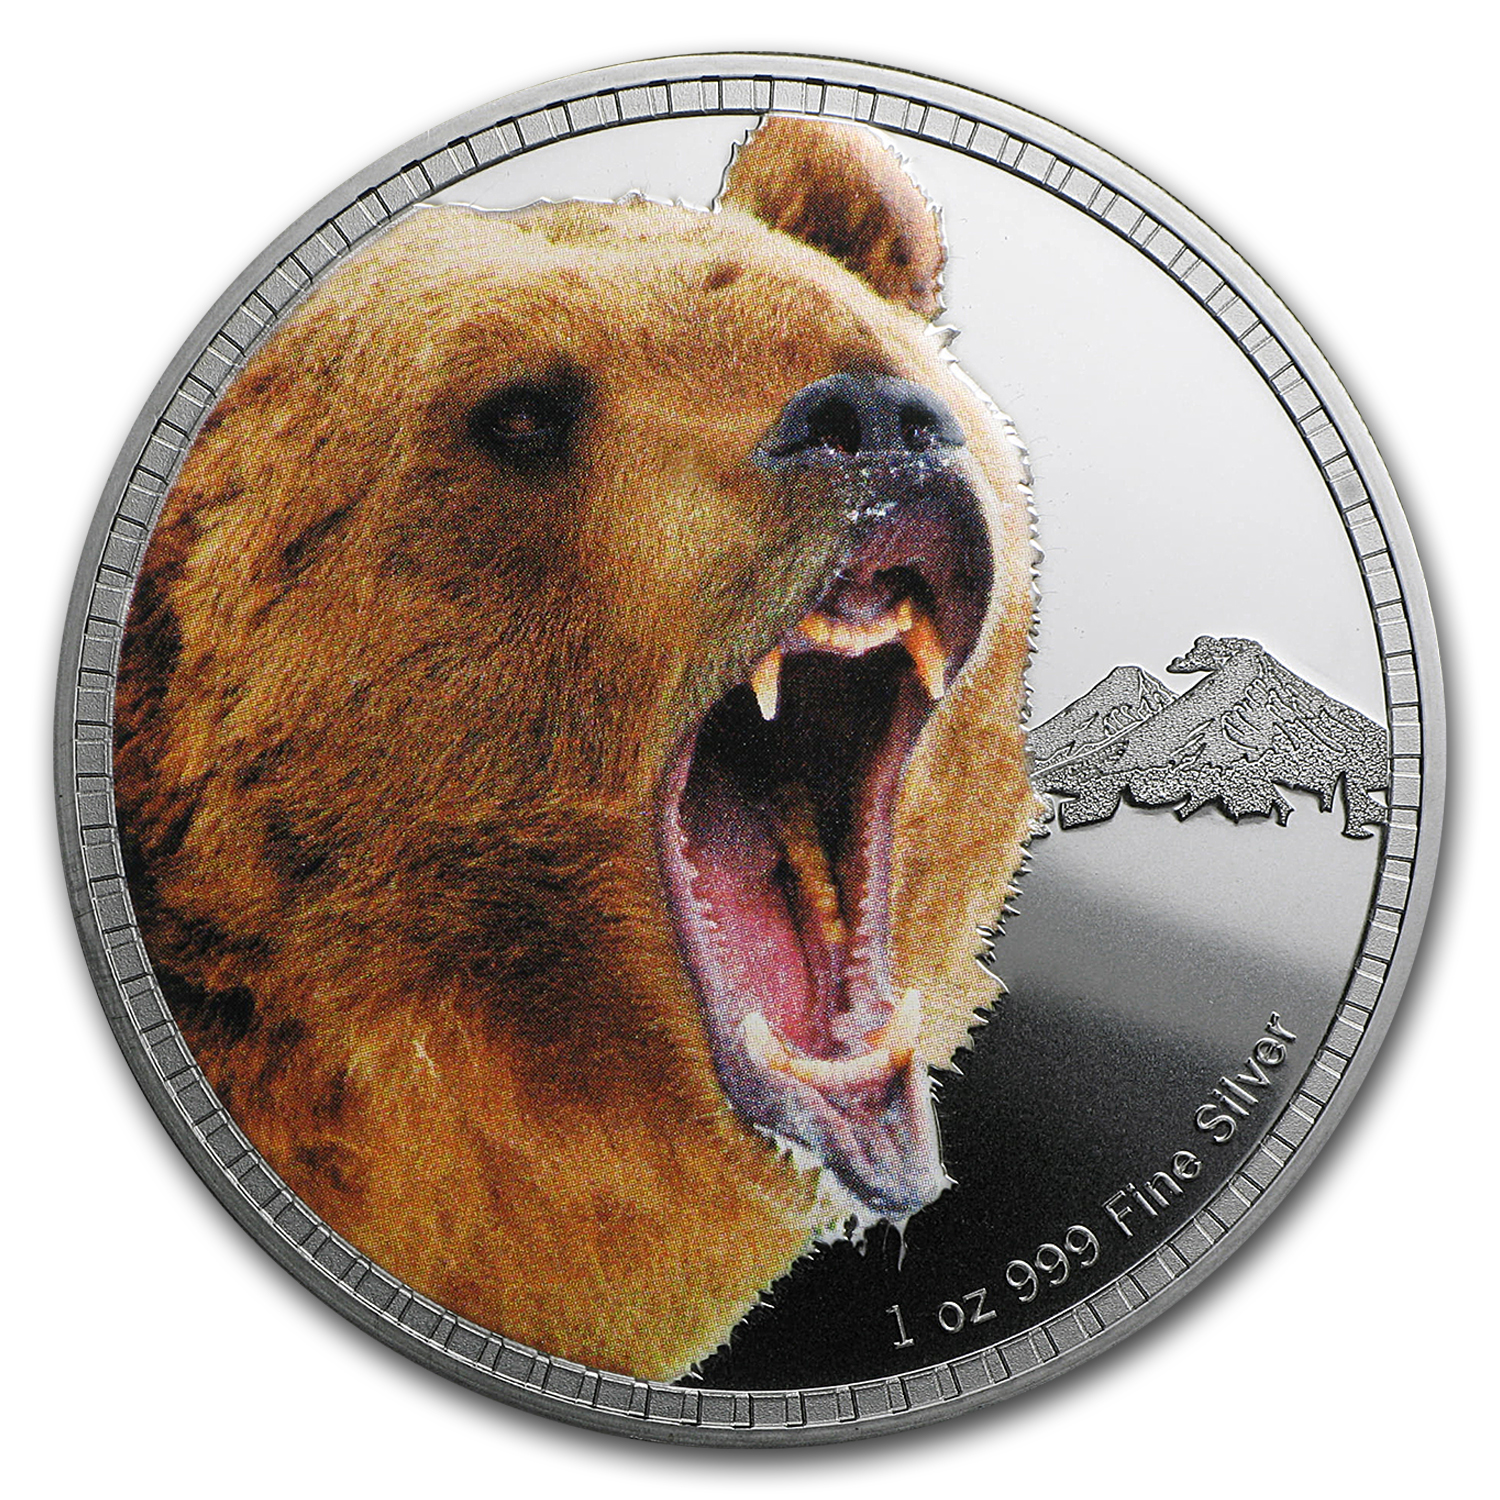 2016 Niue 1 oz Silver Kings of Continents Grizzly Bear Proof